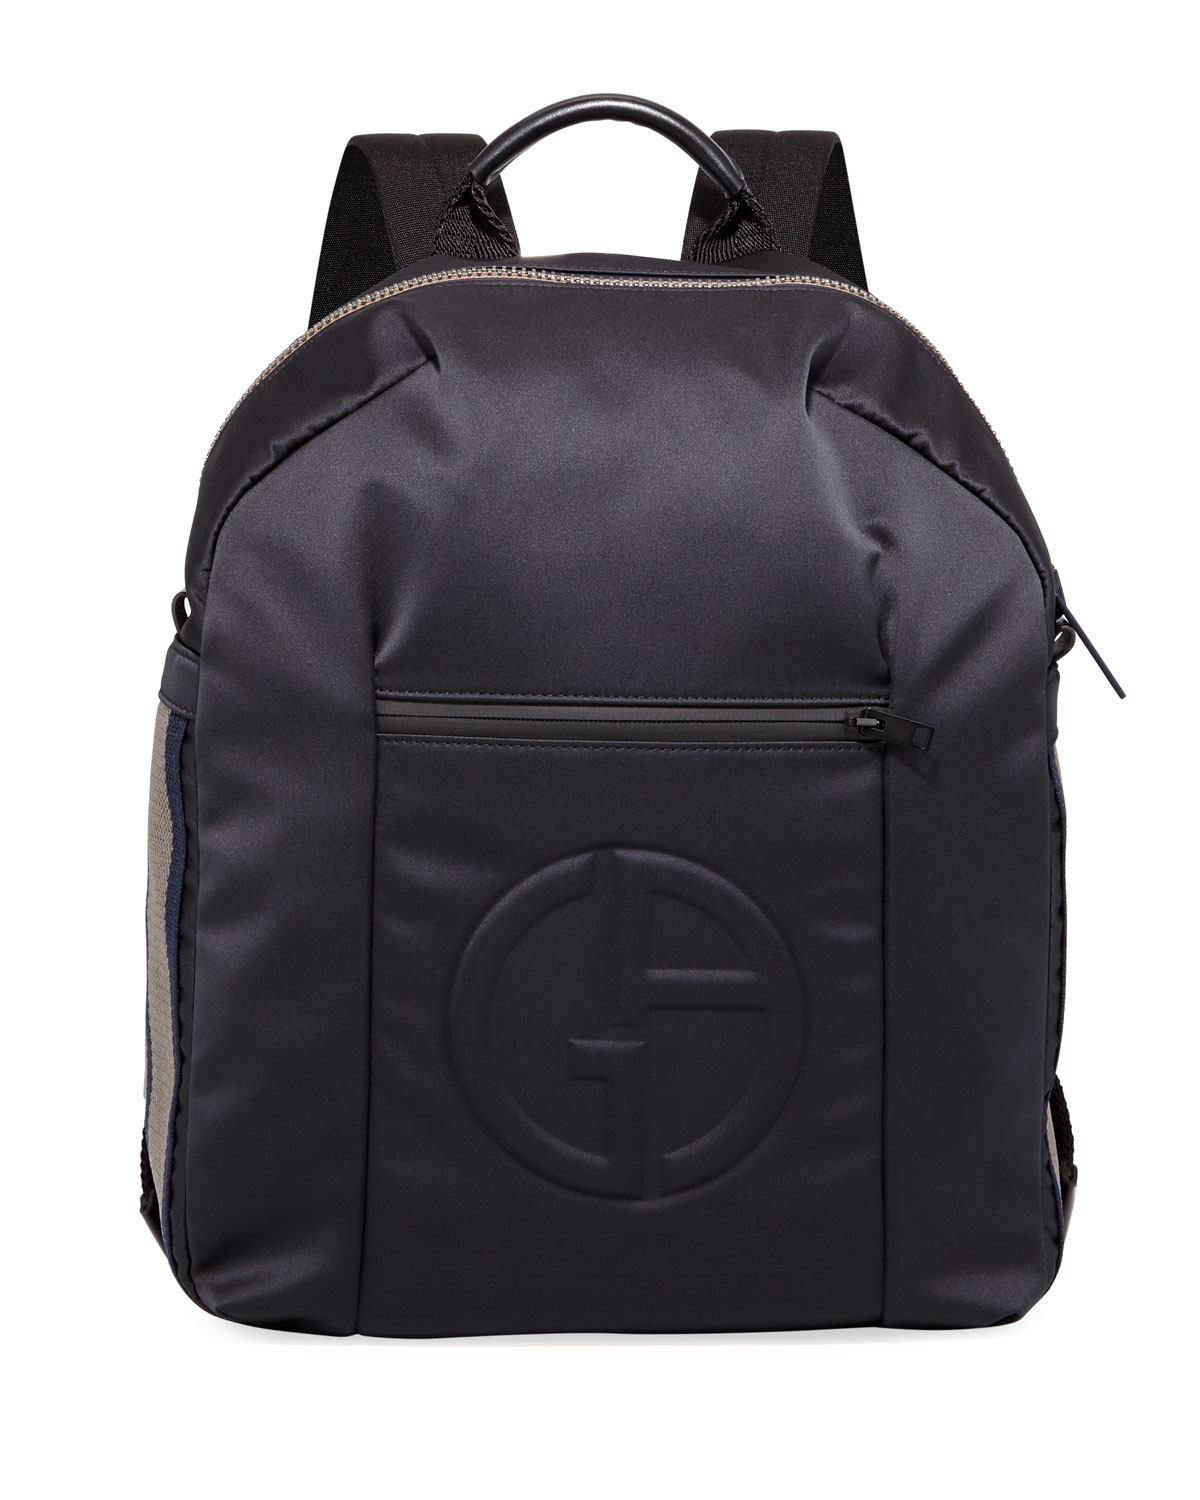 51b69def9 Giorgio Armani Men's Nylon Backpack In Black | ModeSens